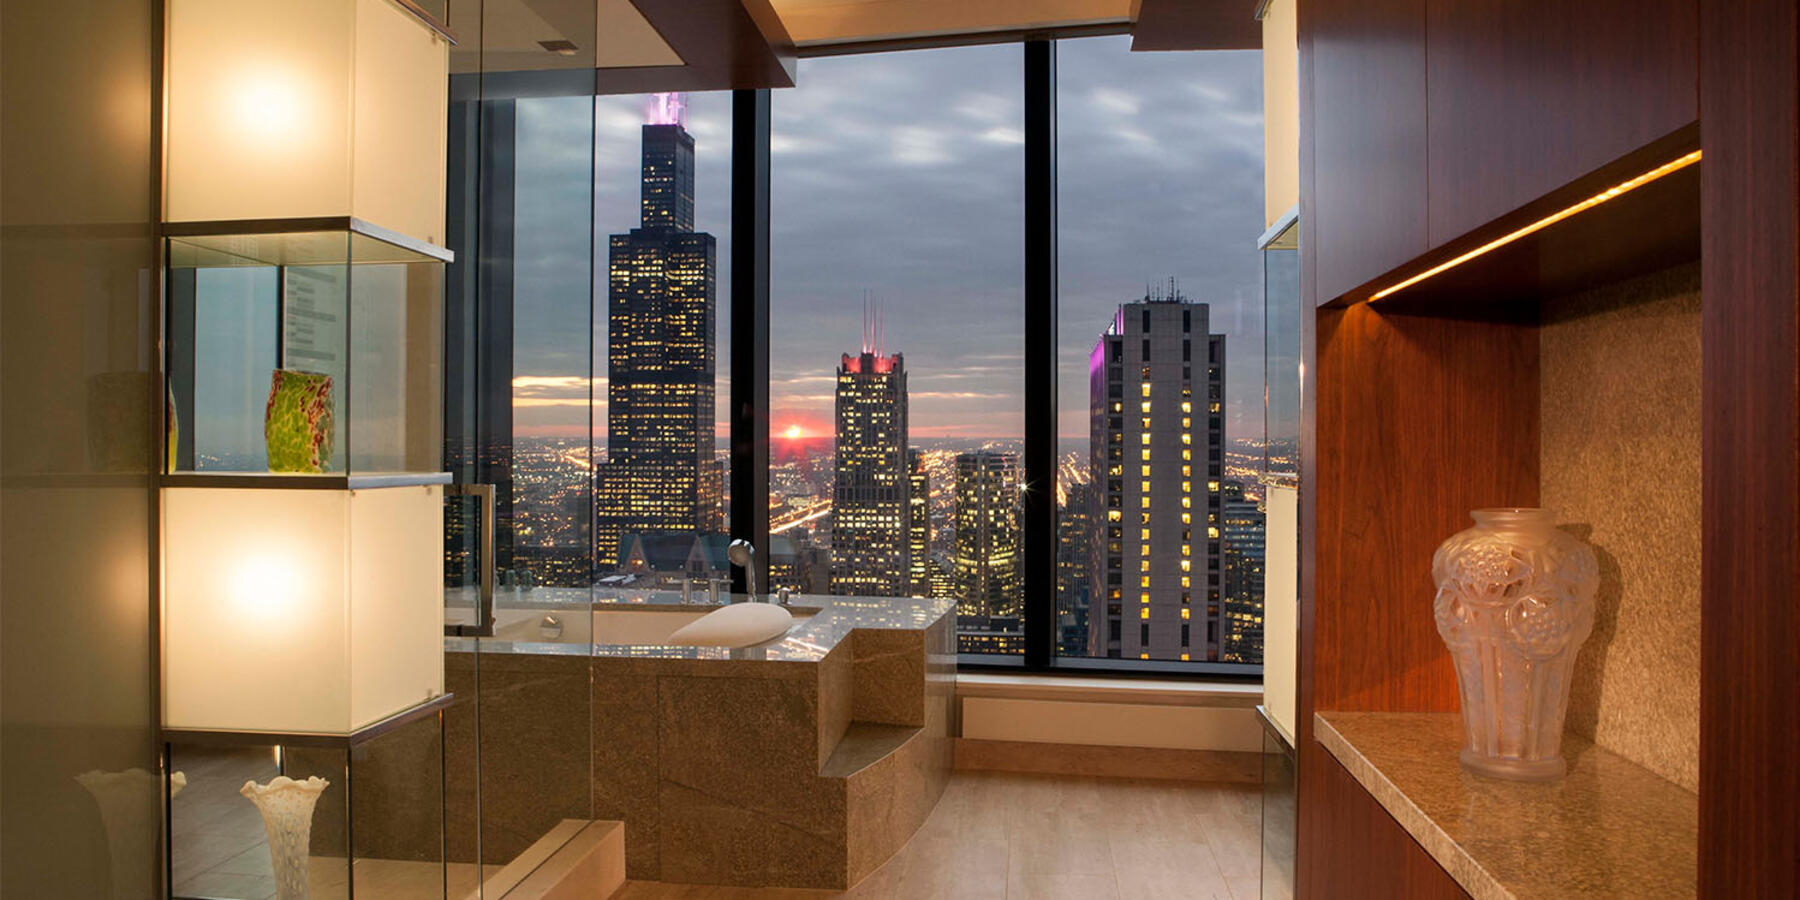 High End Home Contractors Chicago - The Legacy interior with skyline views at dusk